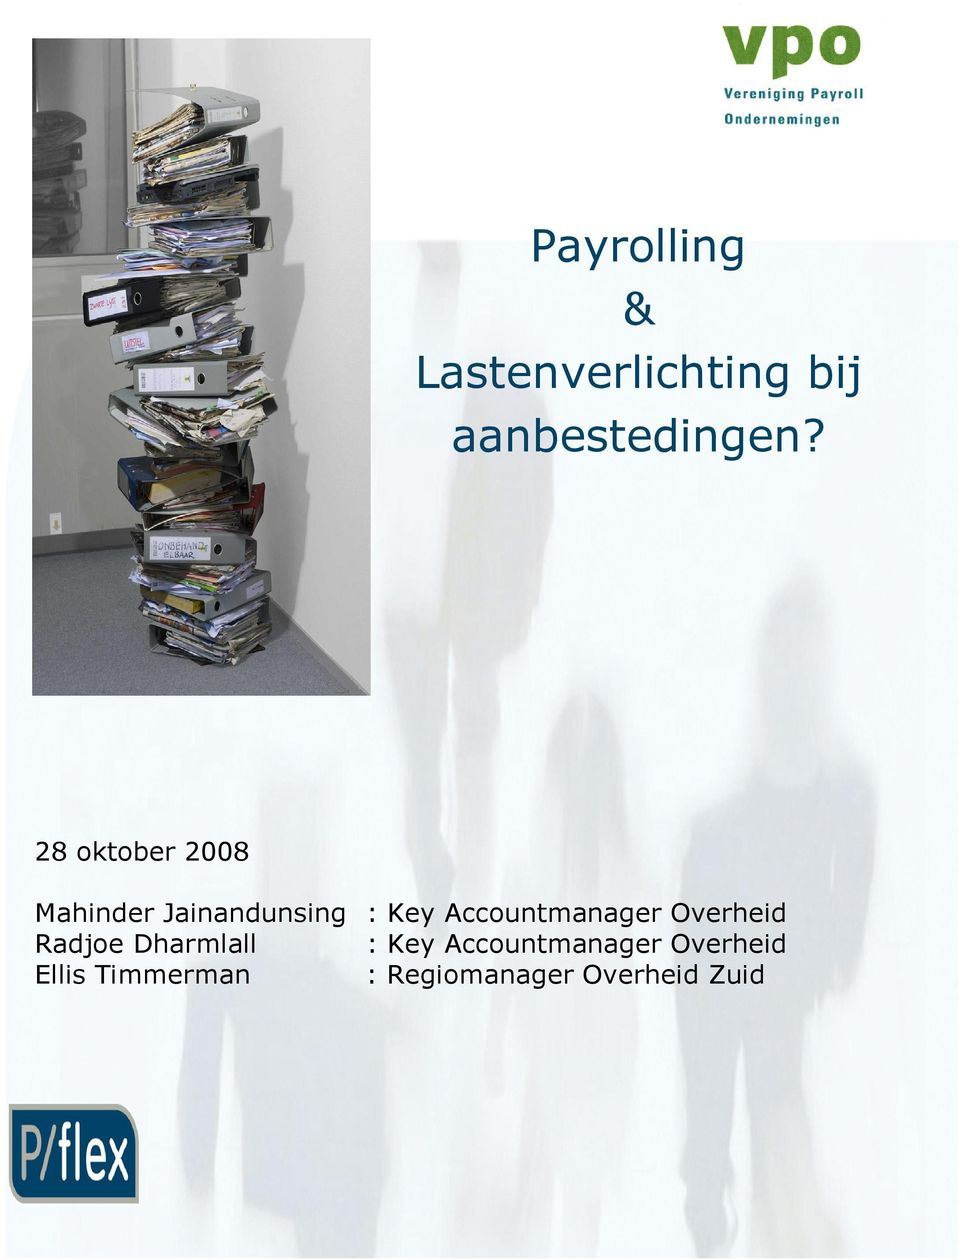 Accountmanager Overheid Radjoe Dharmlall : Key